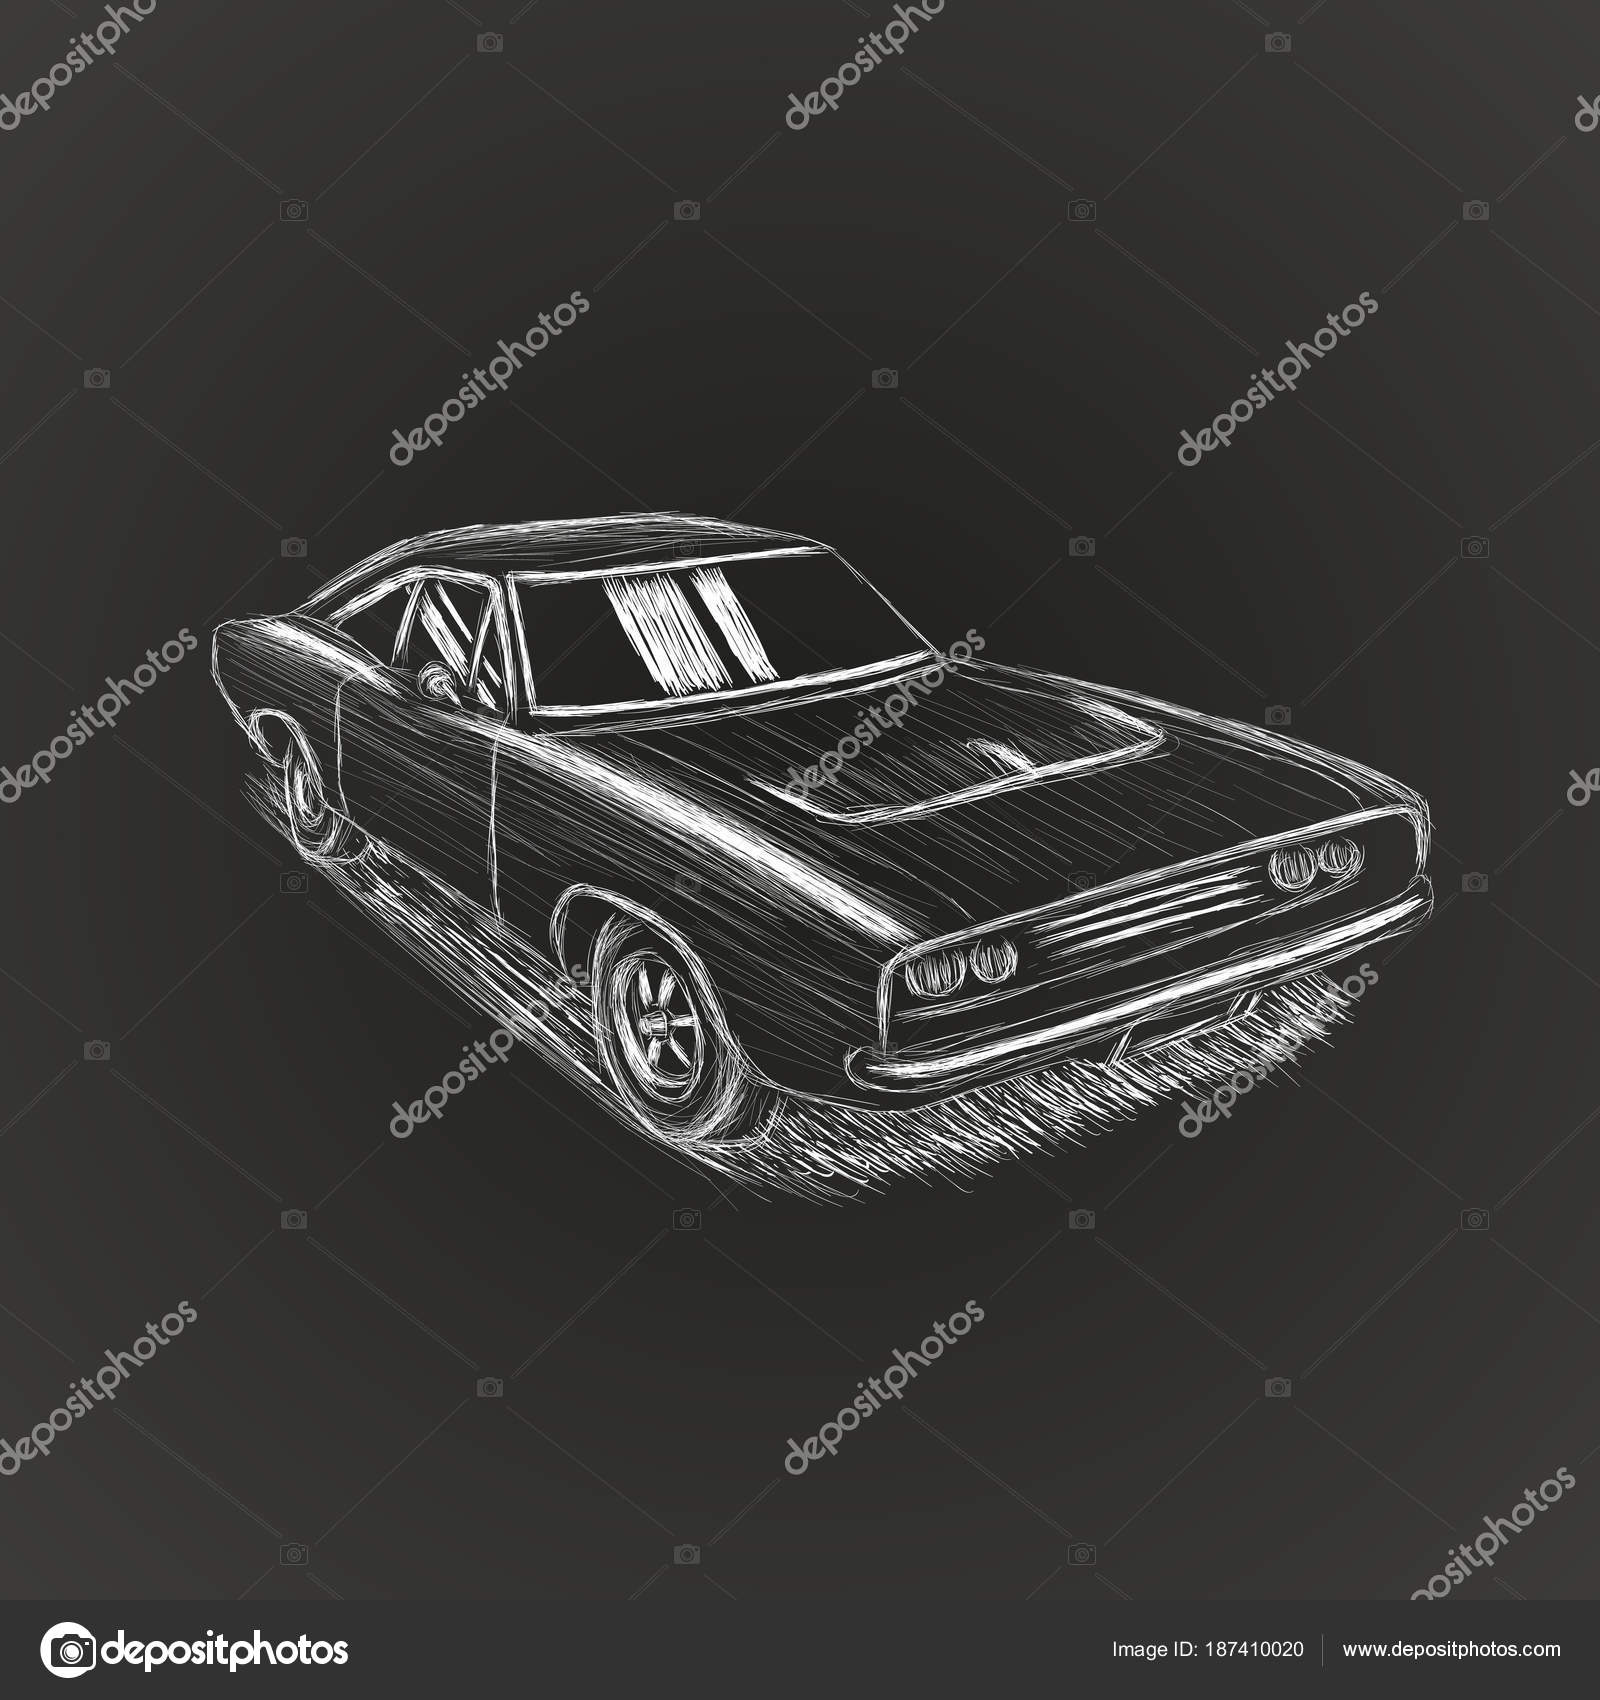 Classic american muscle car hand drawn vector illustration sketch ...